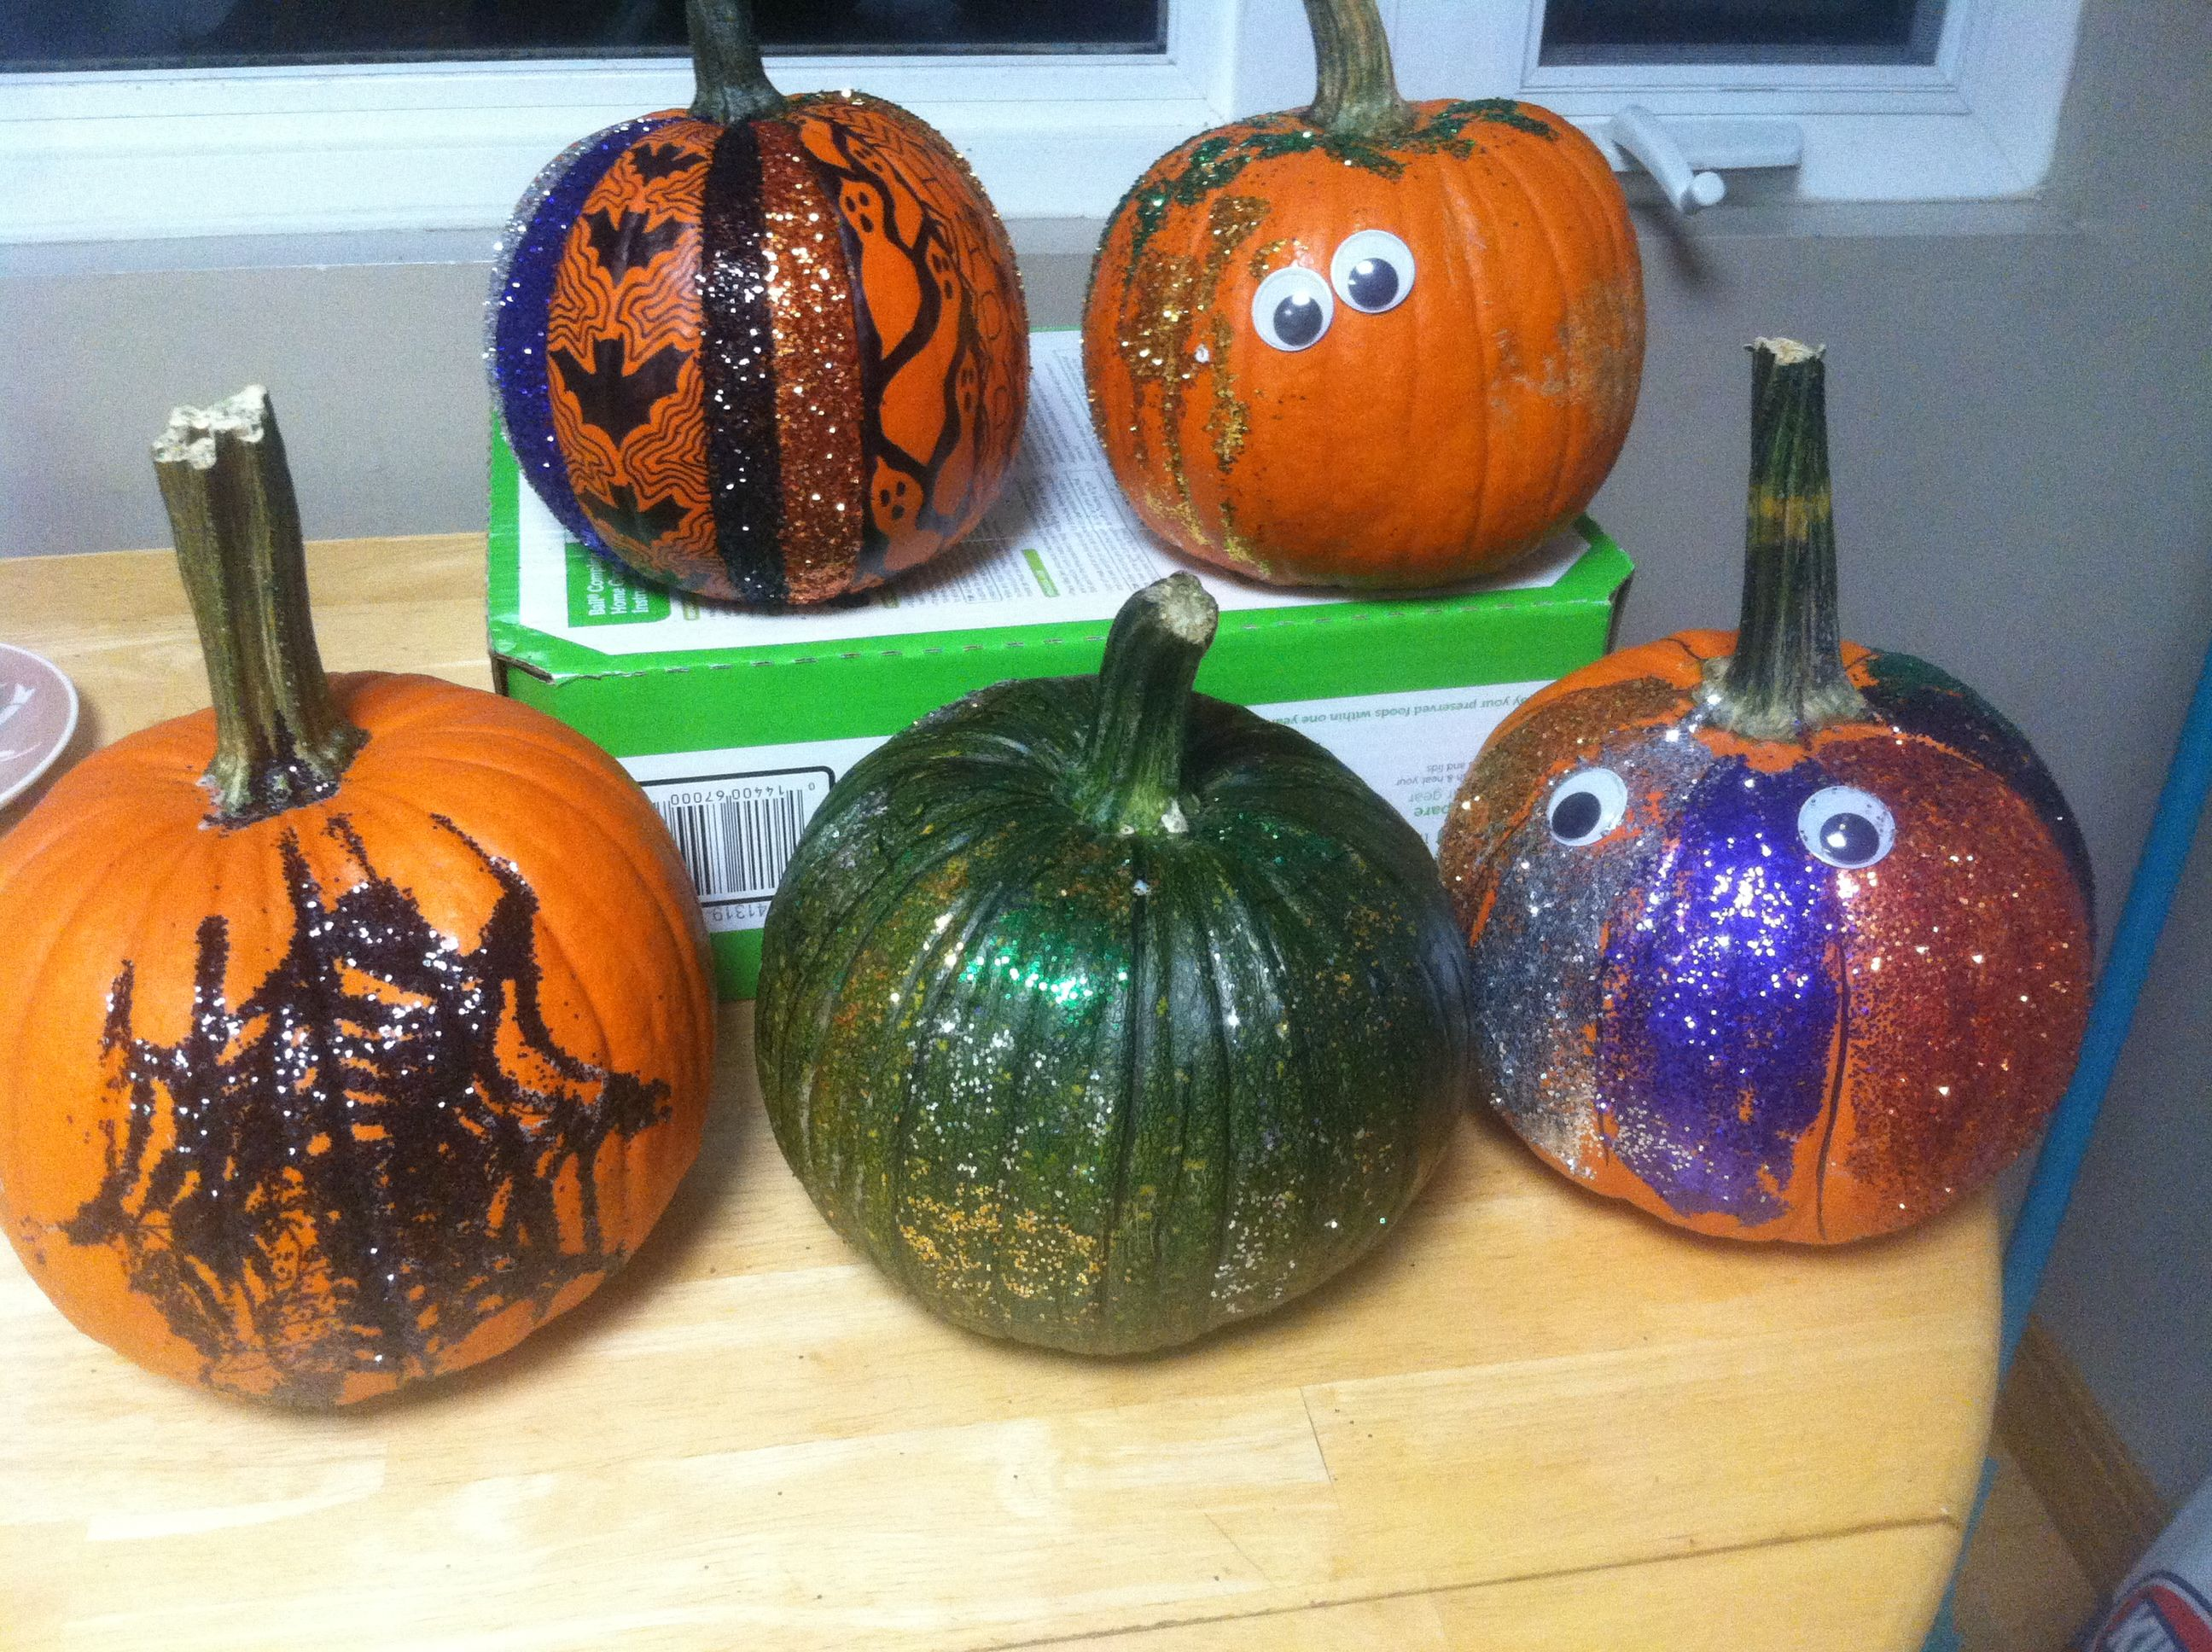 We love to glitter pumpkins!